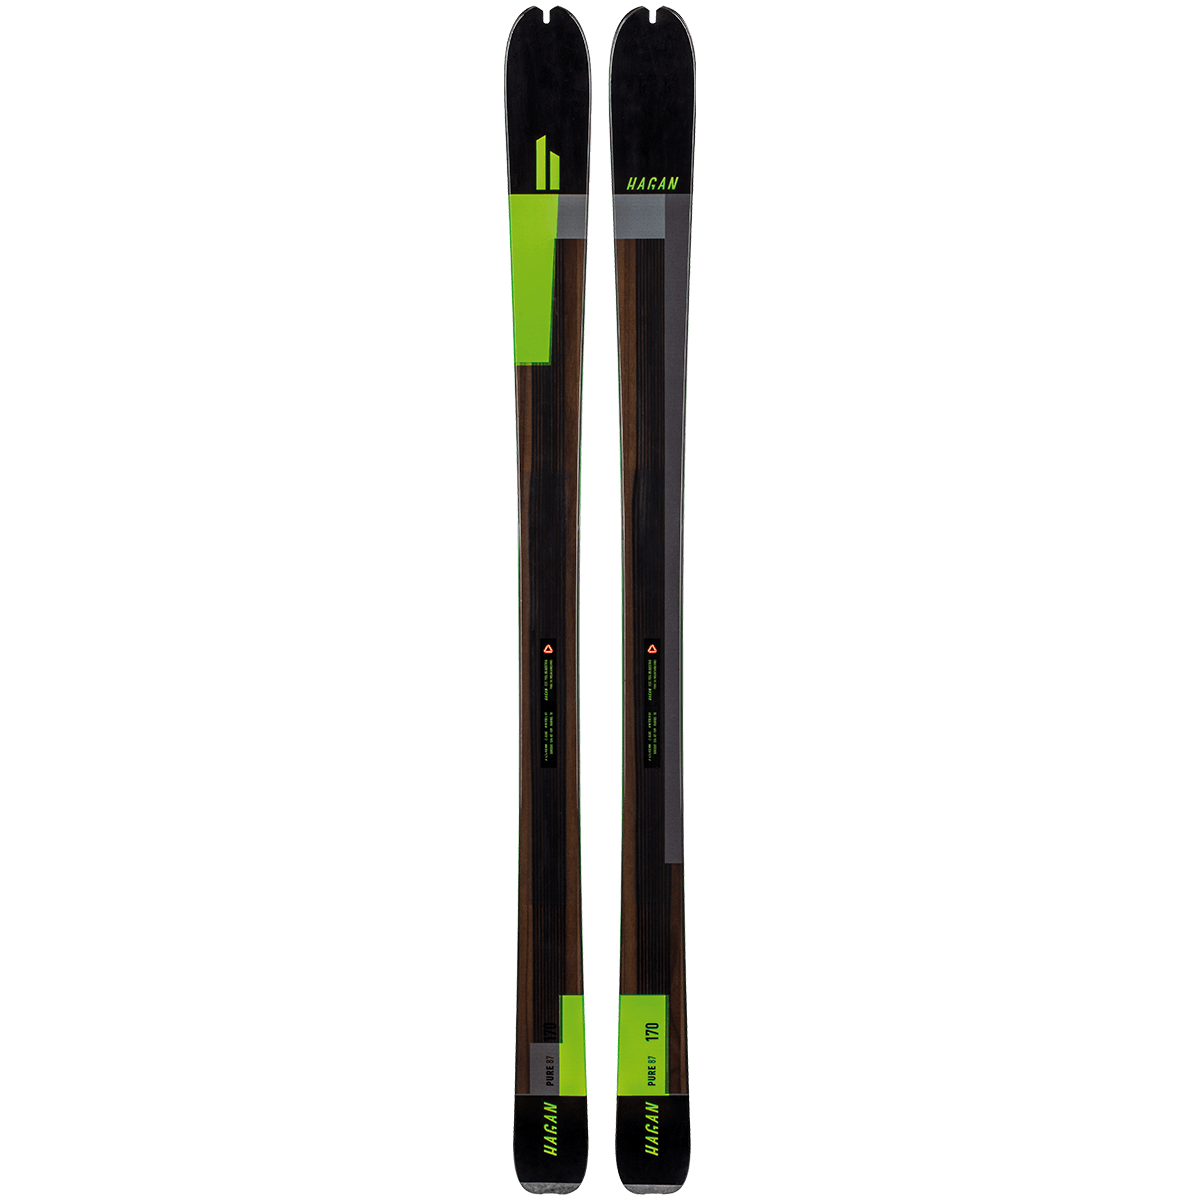 Pure 87 2020, Skis - Hagan Ski Mountaineering Alpine Ski Touring Backcountry Gear